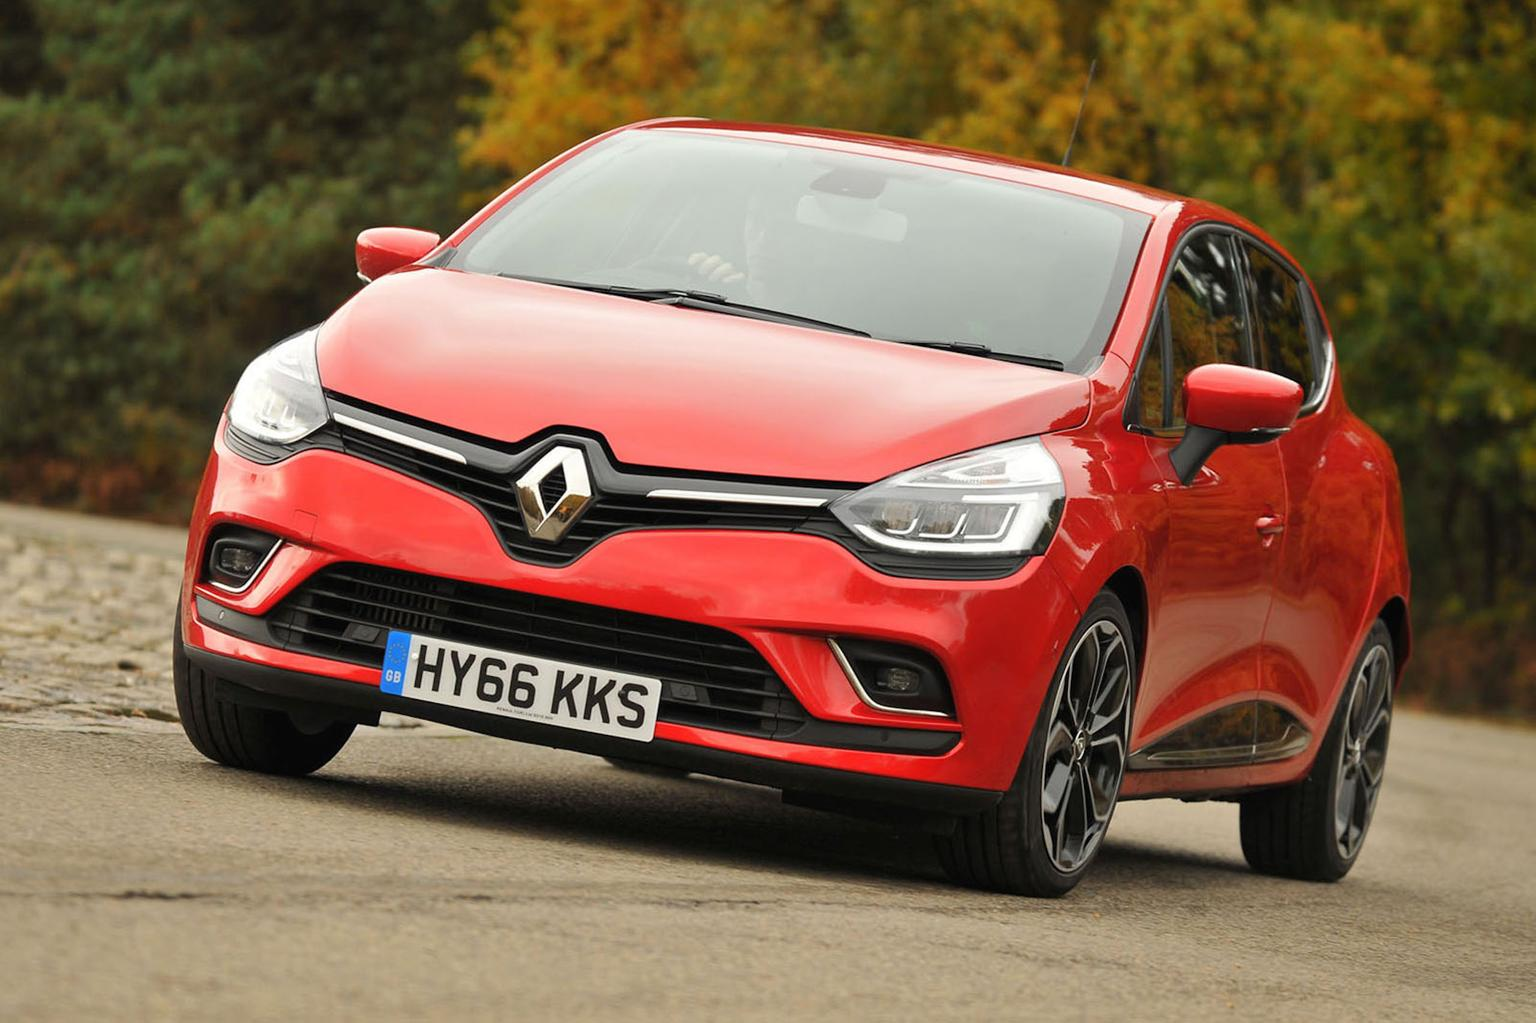 Bumper new car discounts available in August ahead of new emissions rules